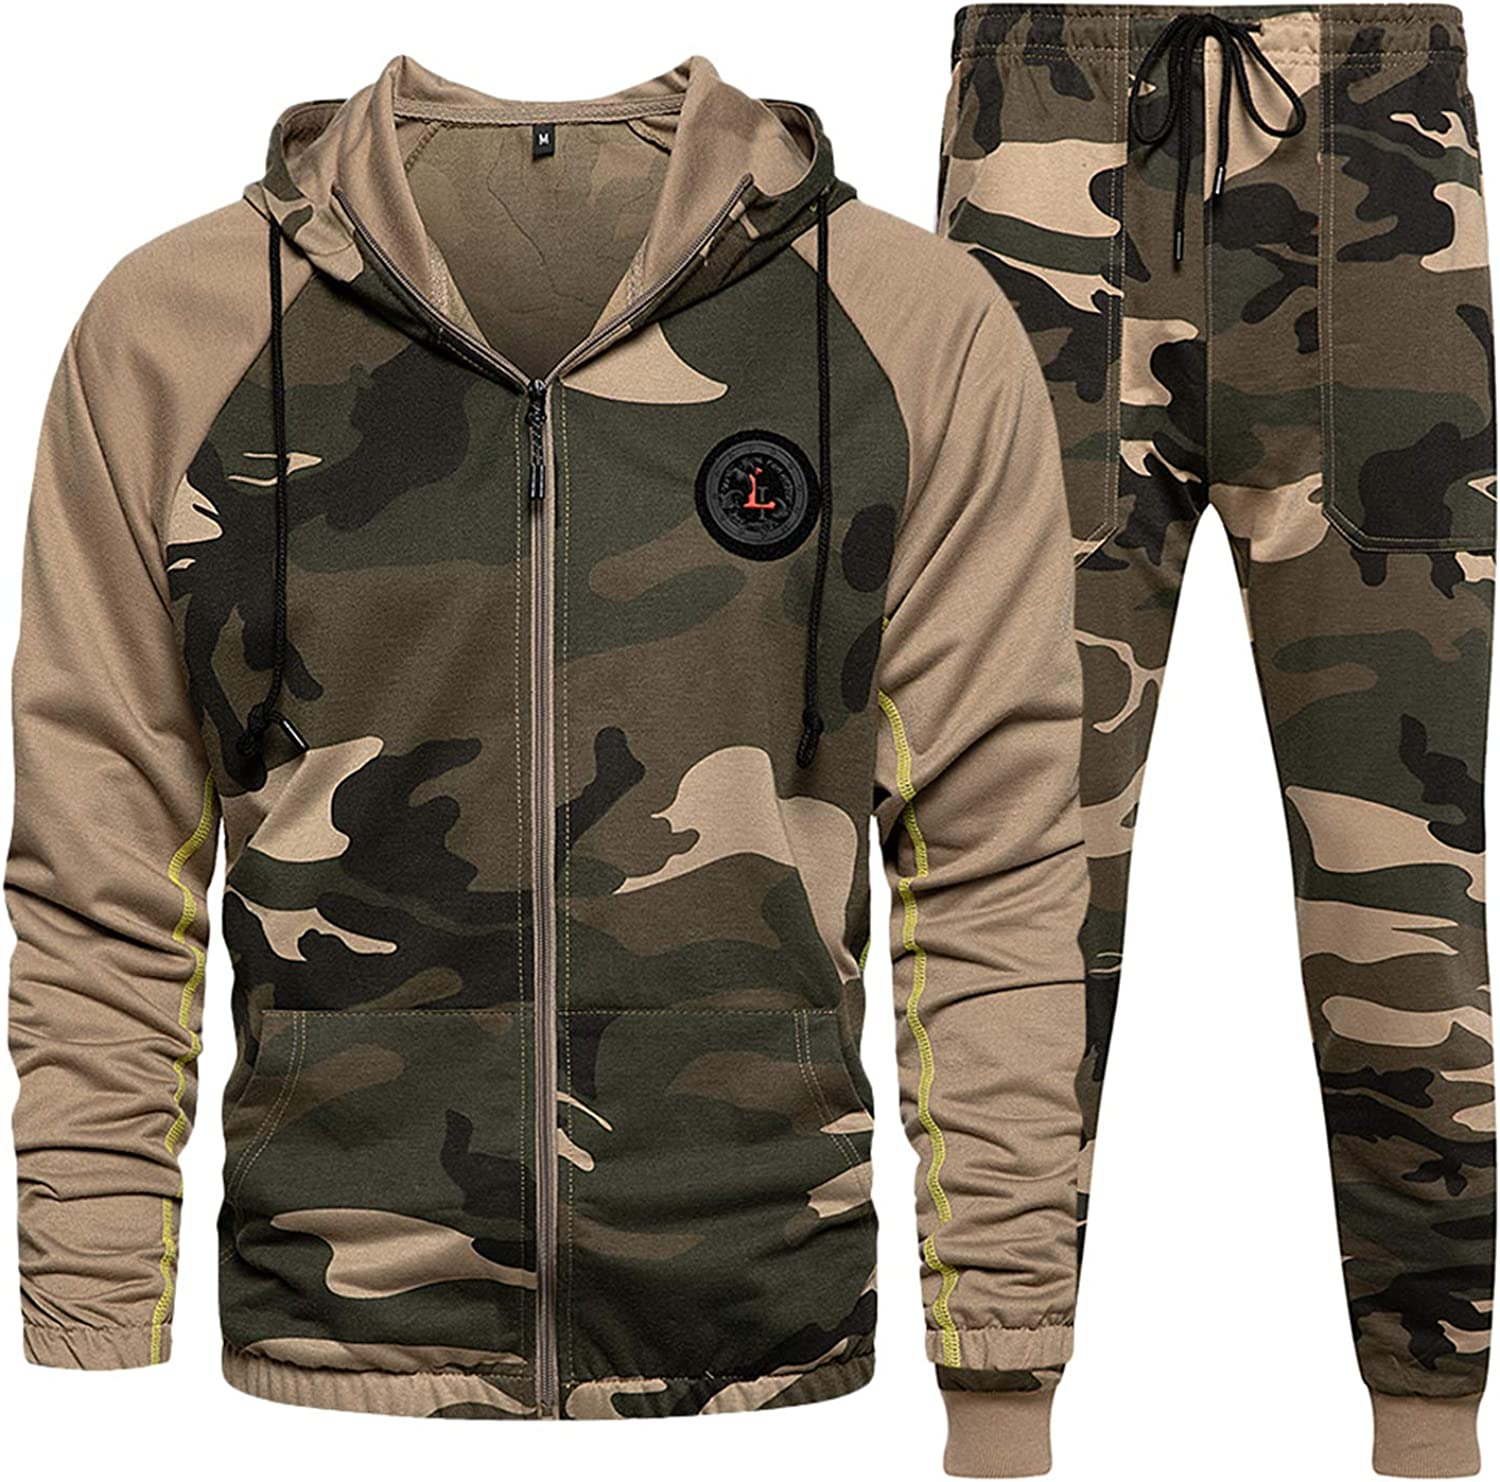 Max 55% OFF Mens Sweatsuits 2 Piece Hoodie Camo Tracksuit Over item handling Suits Casual Comfy